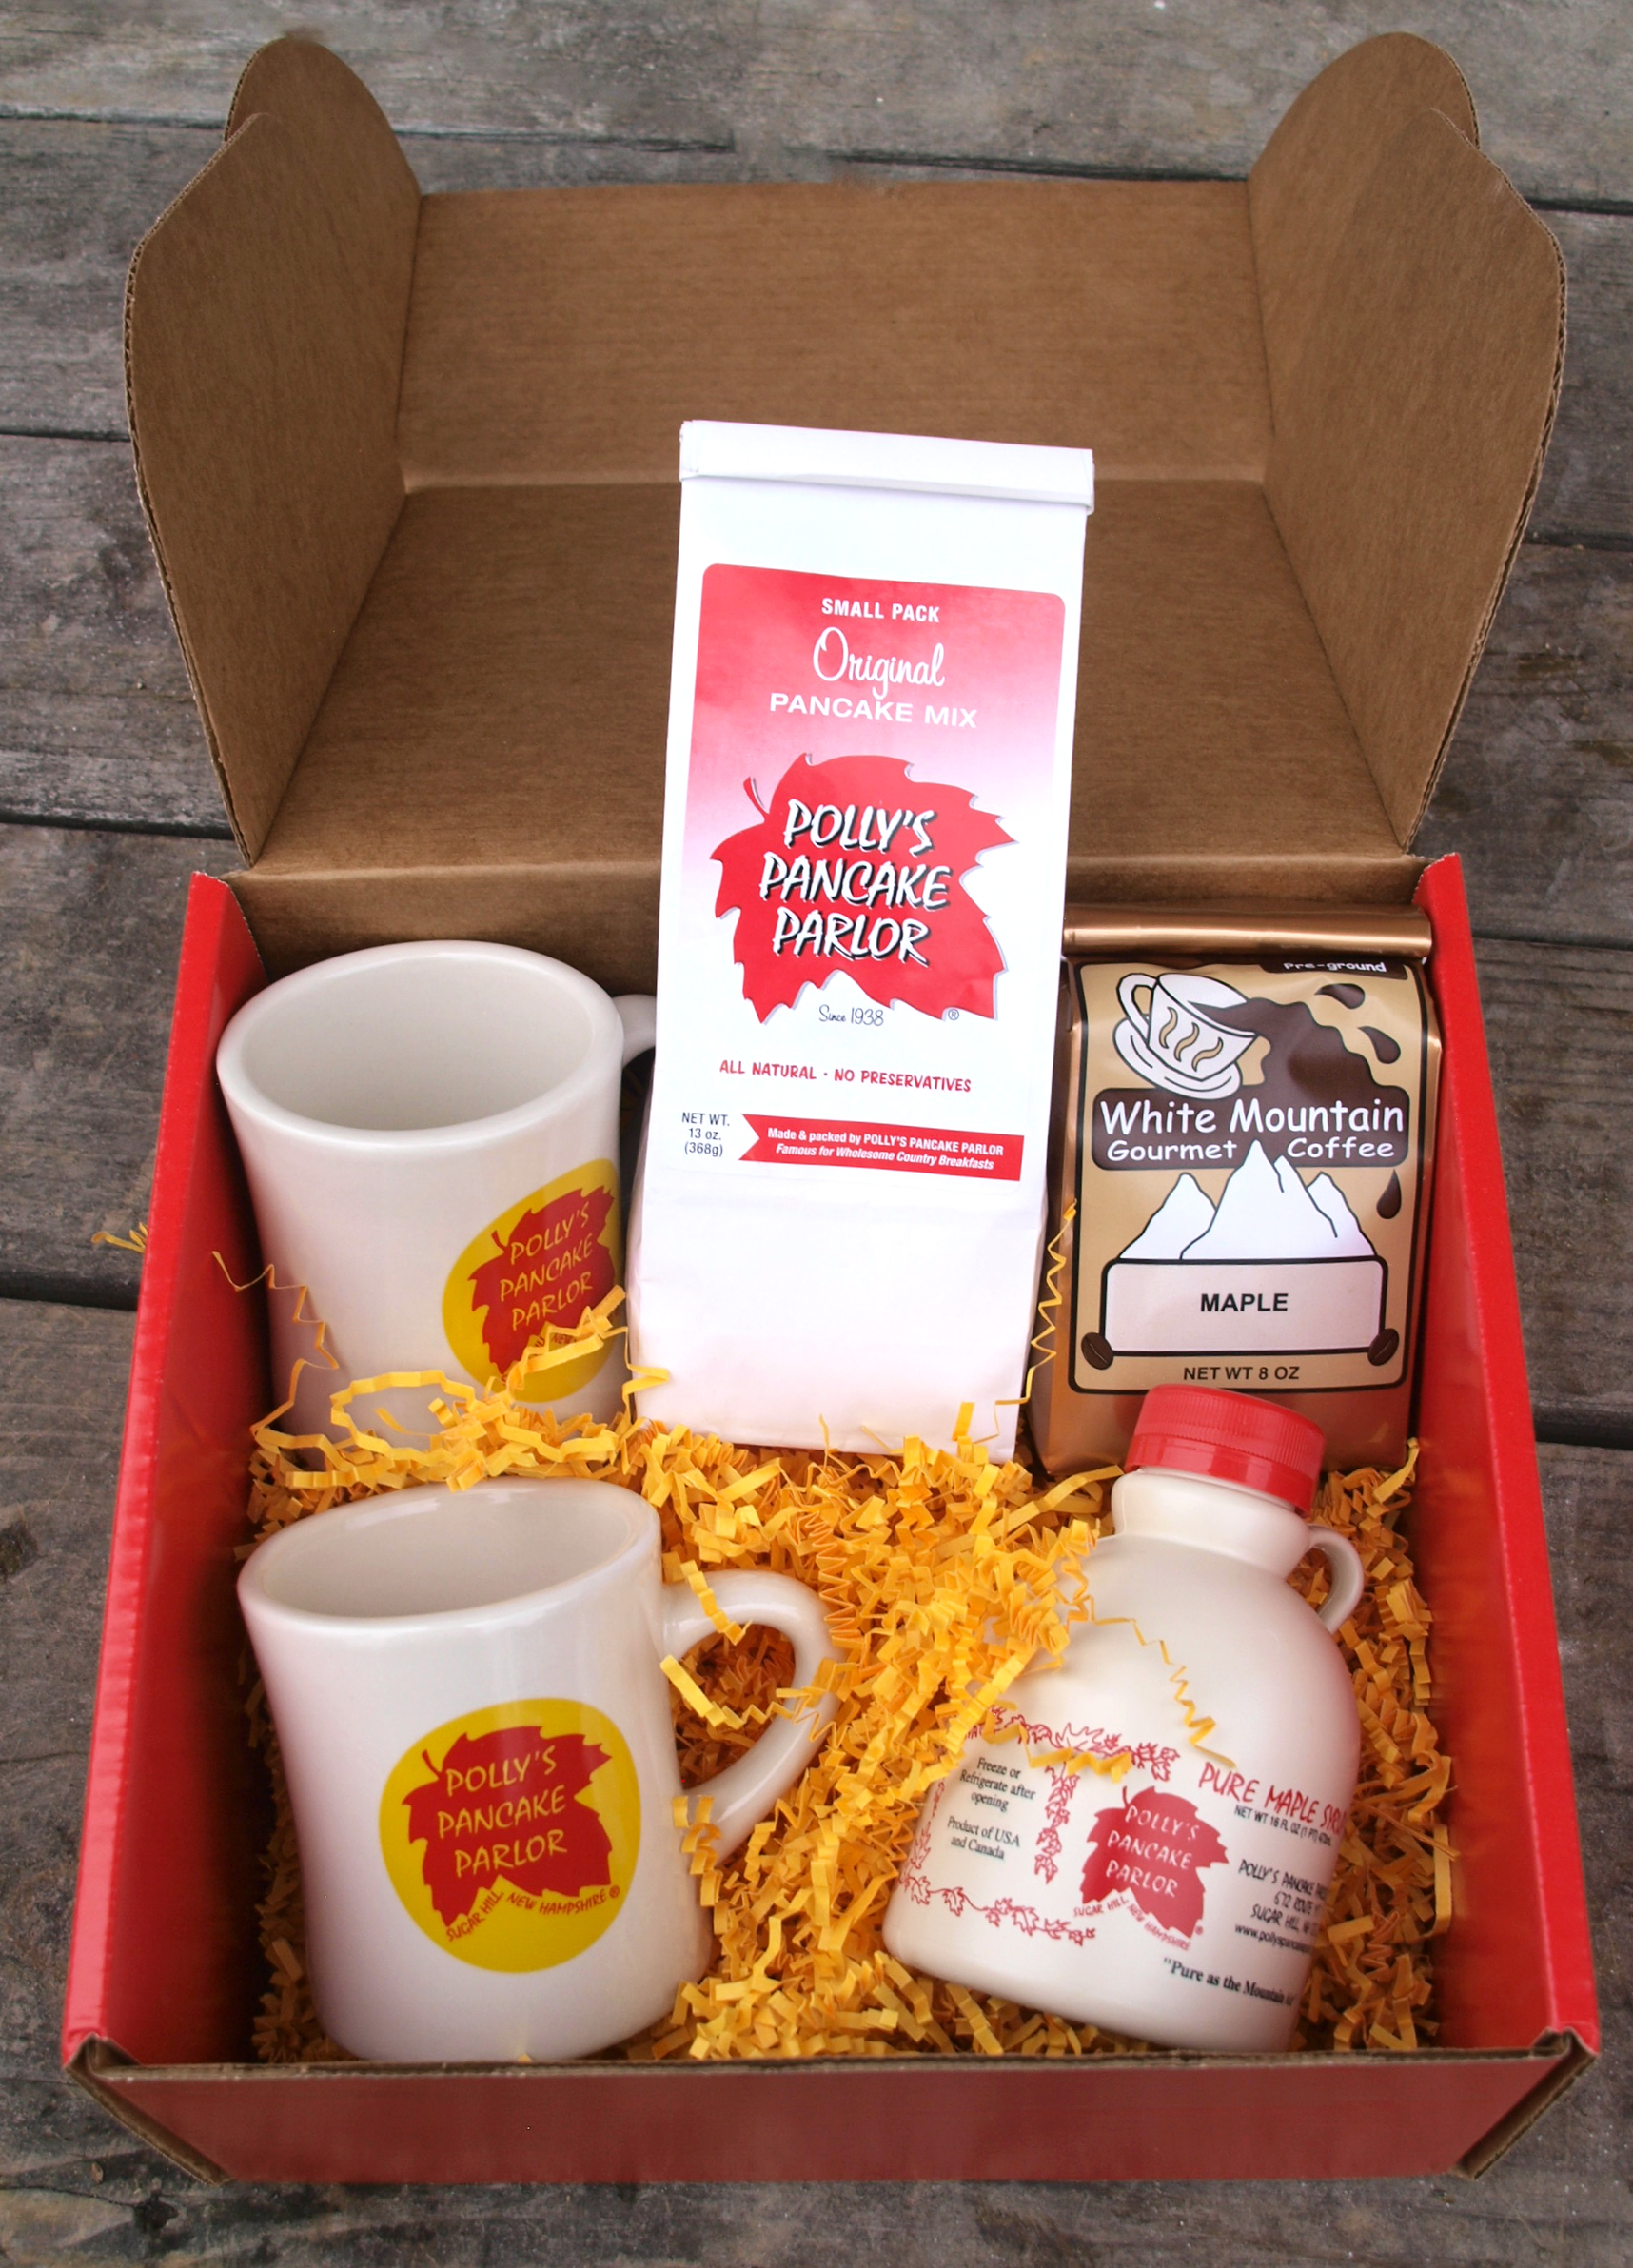 Polly S Pancake Parlor Polly S Breakfast Gift Combination